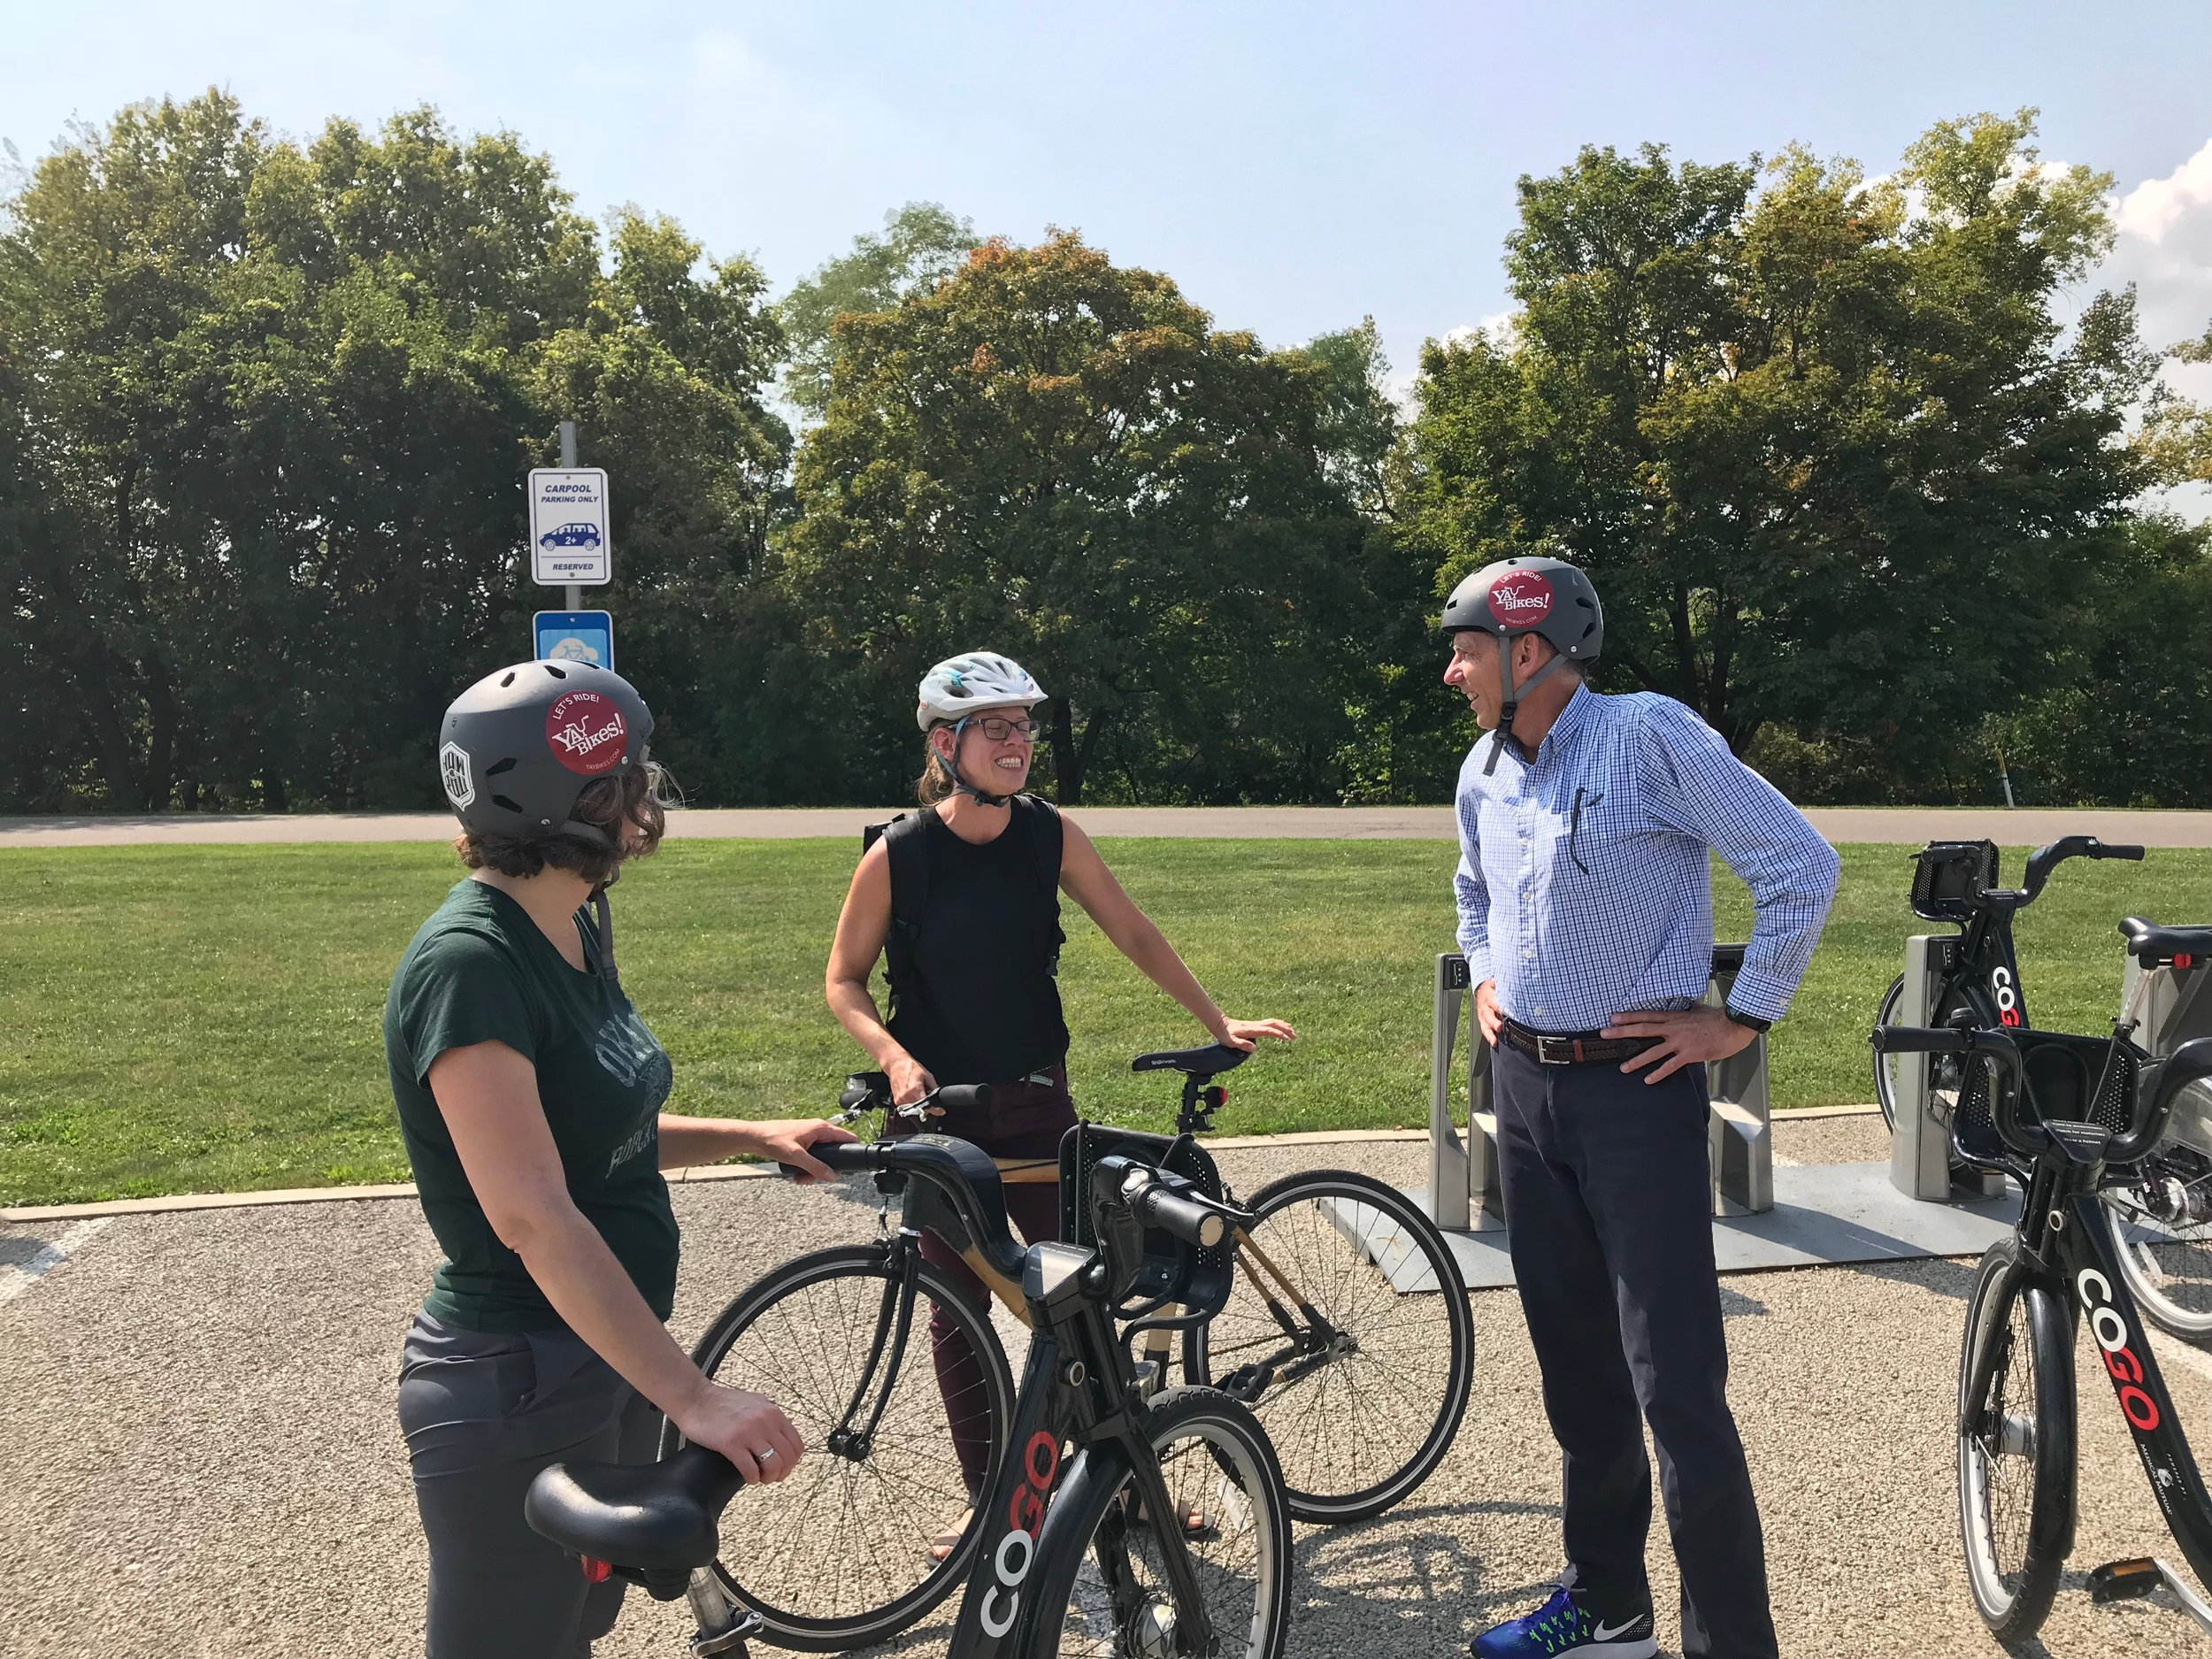 Riders discover how easy it is to use CoGo to ride into Downtown from Scioto Audubon Metro Park. Photo credit: Deo Martinez